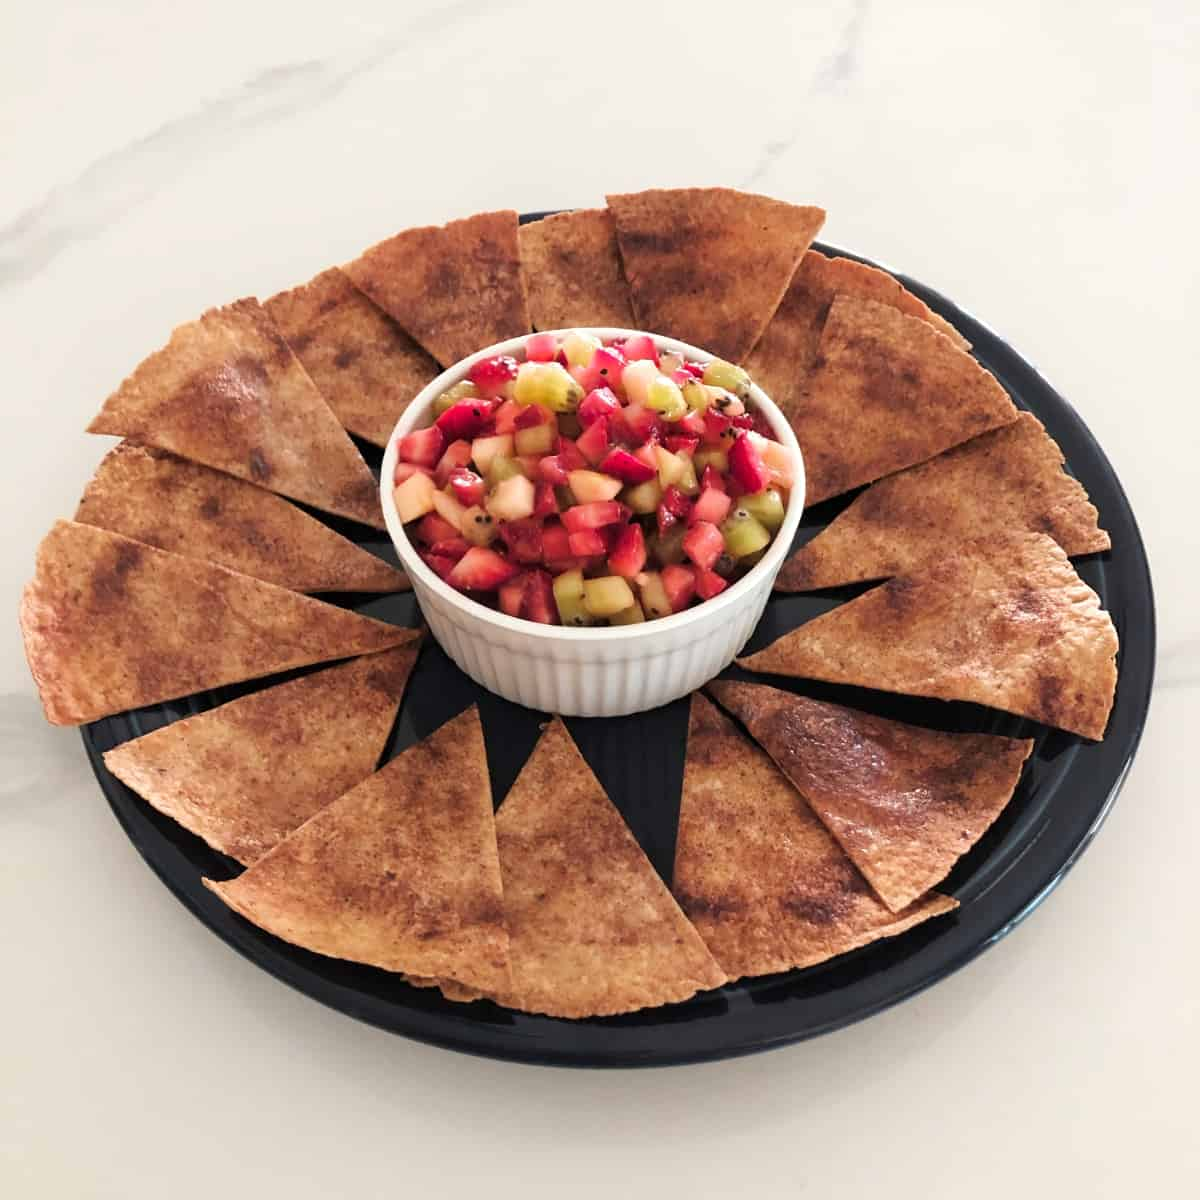 Fruit salsa in white bowl on platter scatter with cinnamon-sugar crisps.